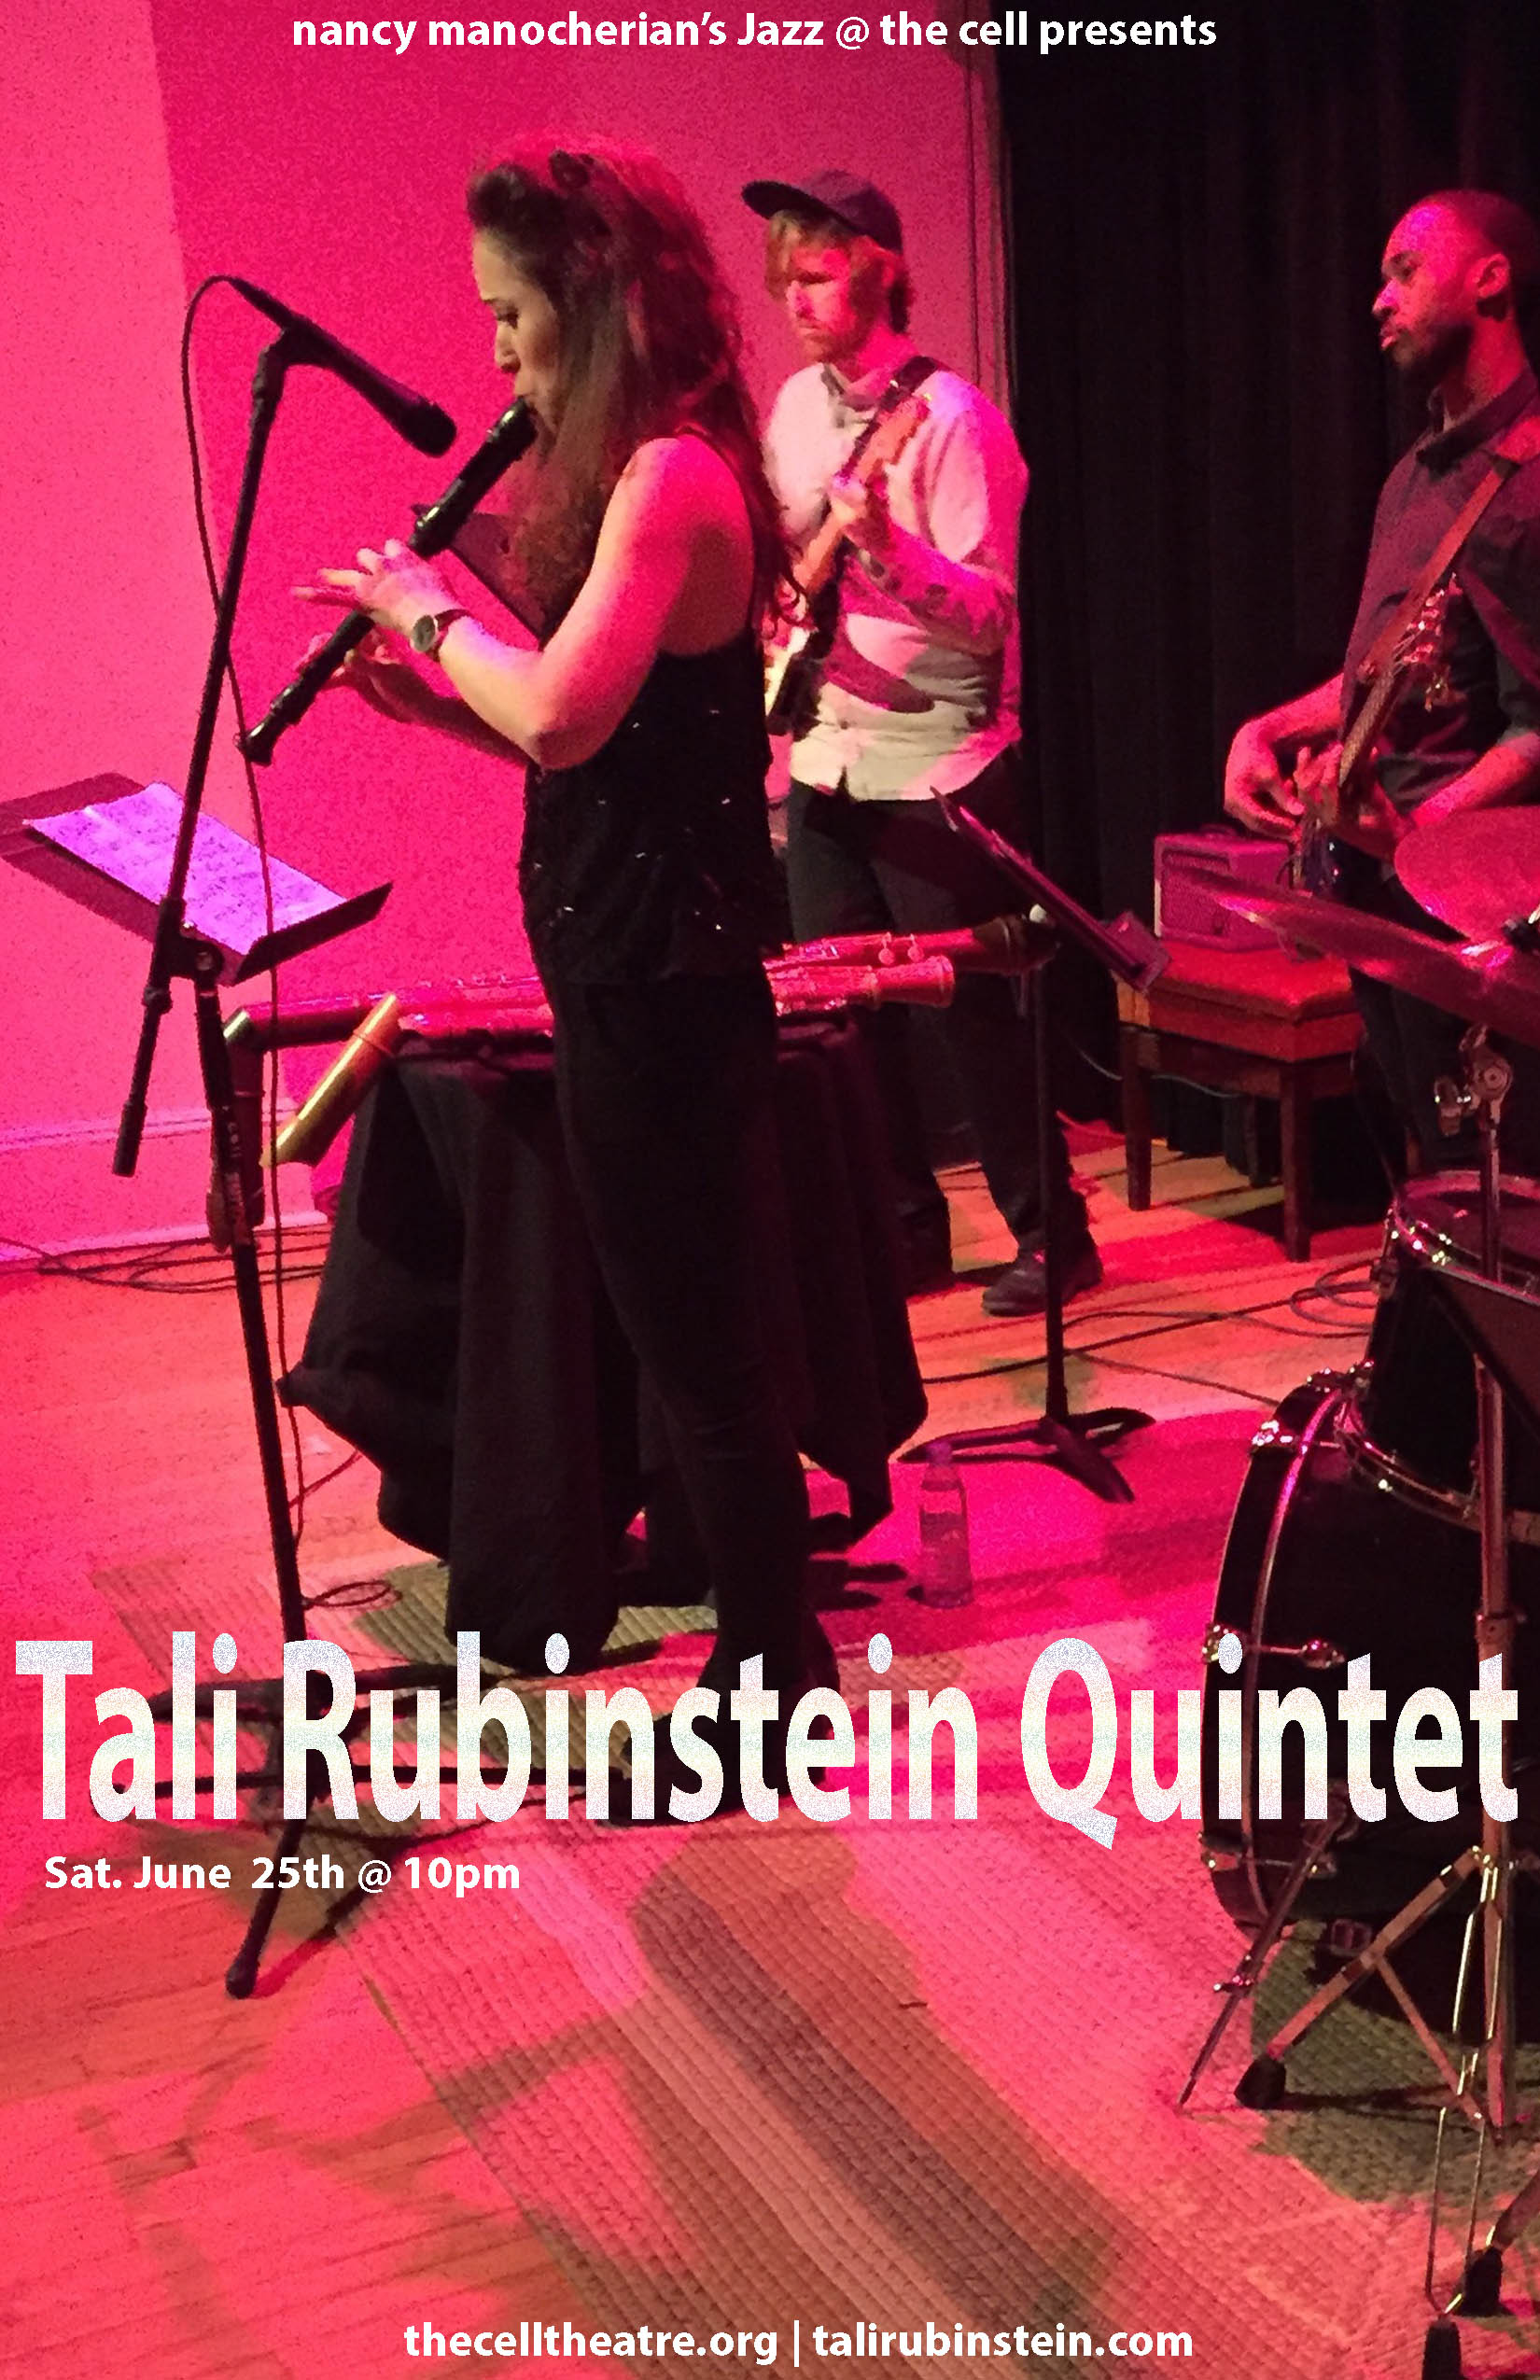 """NYC based recorder player, singer, and composer Tali Rubinstein began her musical path as a young girl. A student of recorder player and singer Bracha Kol, she has been professionally trained in classical recorder performance for 15 years, later on to dive into the jazz and be-bop world with jazz flautist Ilan Salem. Tali has graduated with honors from prestigious music institutions in Israel: Thelma Yellin High School of the Arts (classical performance), Rimon School of Jazz and Contemporary Music, and The Jerusalem Academy of Music and Dance (jazz performance). Recently, Tali graduated with honors from Berklee College of Music, Boston.  During her studies at Berklee College Tali was discovered by multiple Grammy Award winning Spanish producer Javier Limón.  Tali has been collaborating with Limón ever since,including on his masterpiece album """"Promesas De Tierra"""", and on the 2015 Latin Grammy Award winning album """"Entre 20 Aguas""""- a tribute to Paco De Lucia (alongside Chick Corea, Dhafer Youssef,Michel Camilo, Chucho Valdéz and Alejandro Sanz)."""